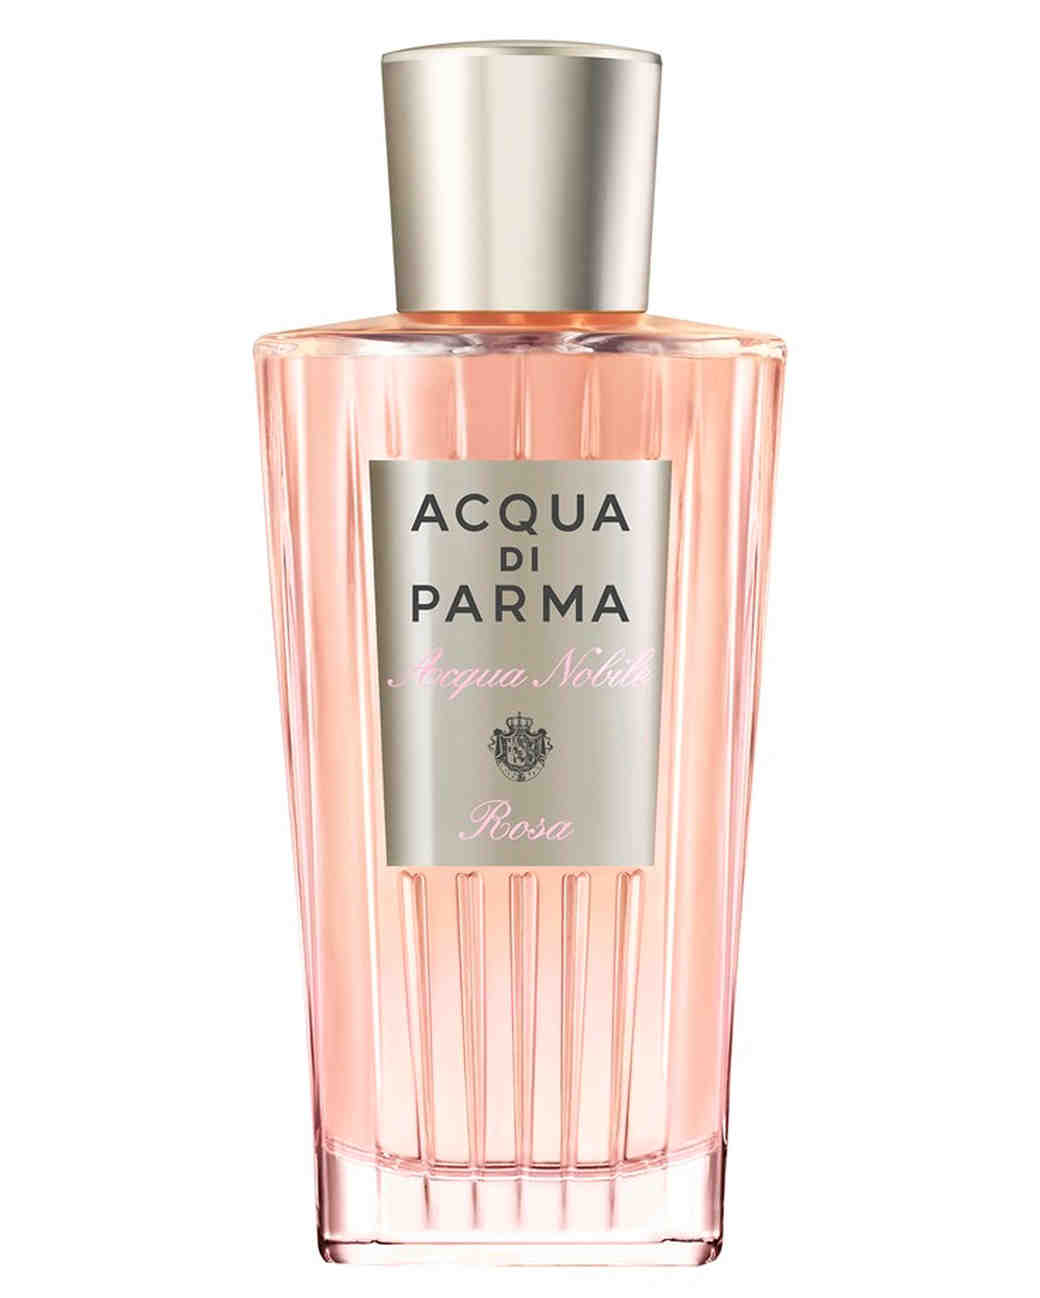 rose-beauty-products-acqua-di-parma-acqua-nobile-rosa-0615.jpg